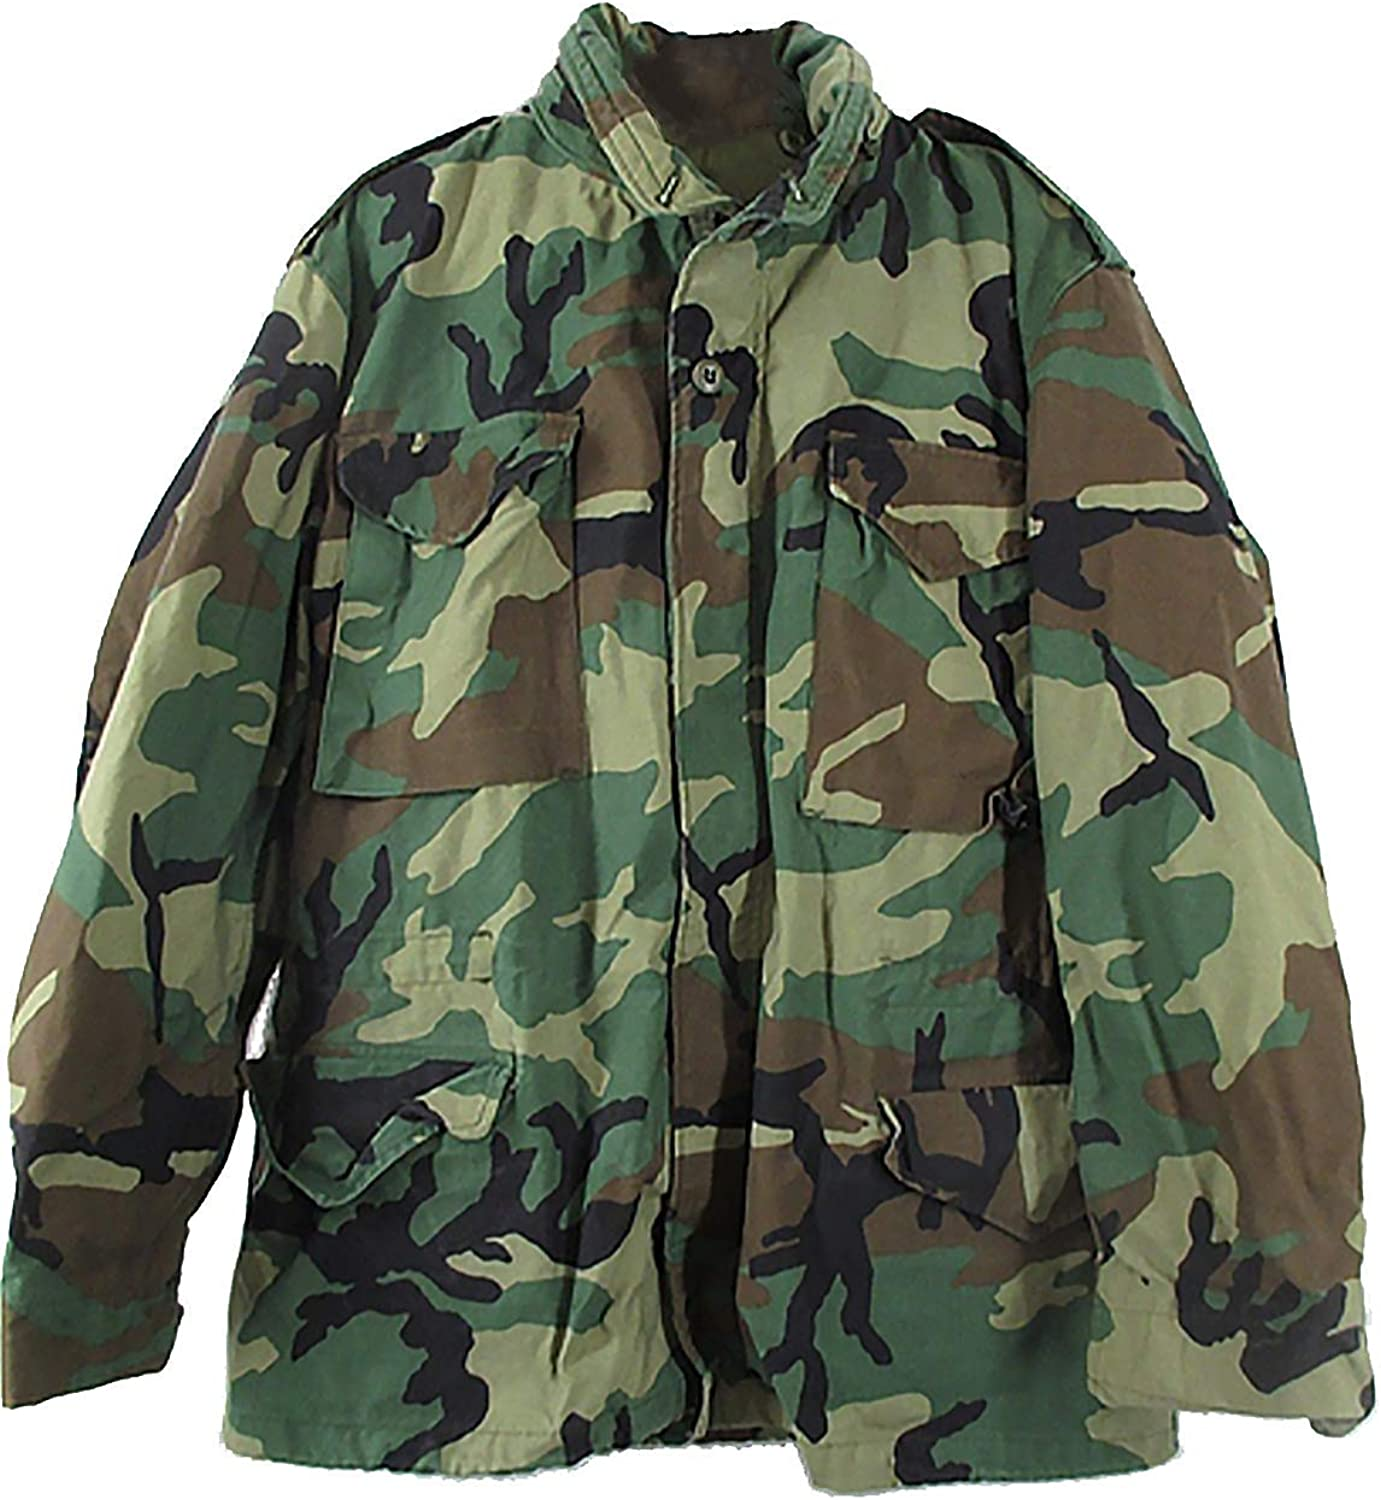 Military Depot U.S Government Issued Woodland M65 Field Jacket